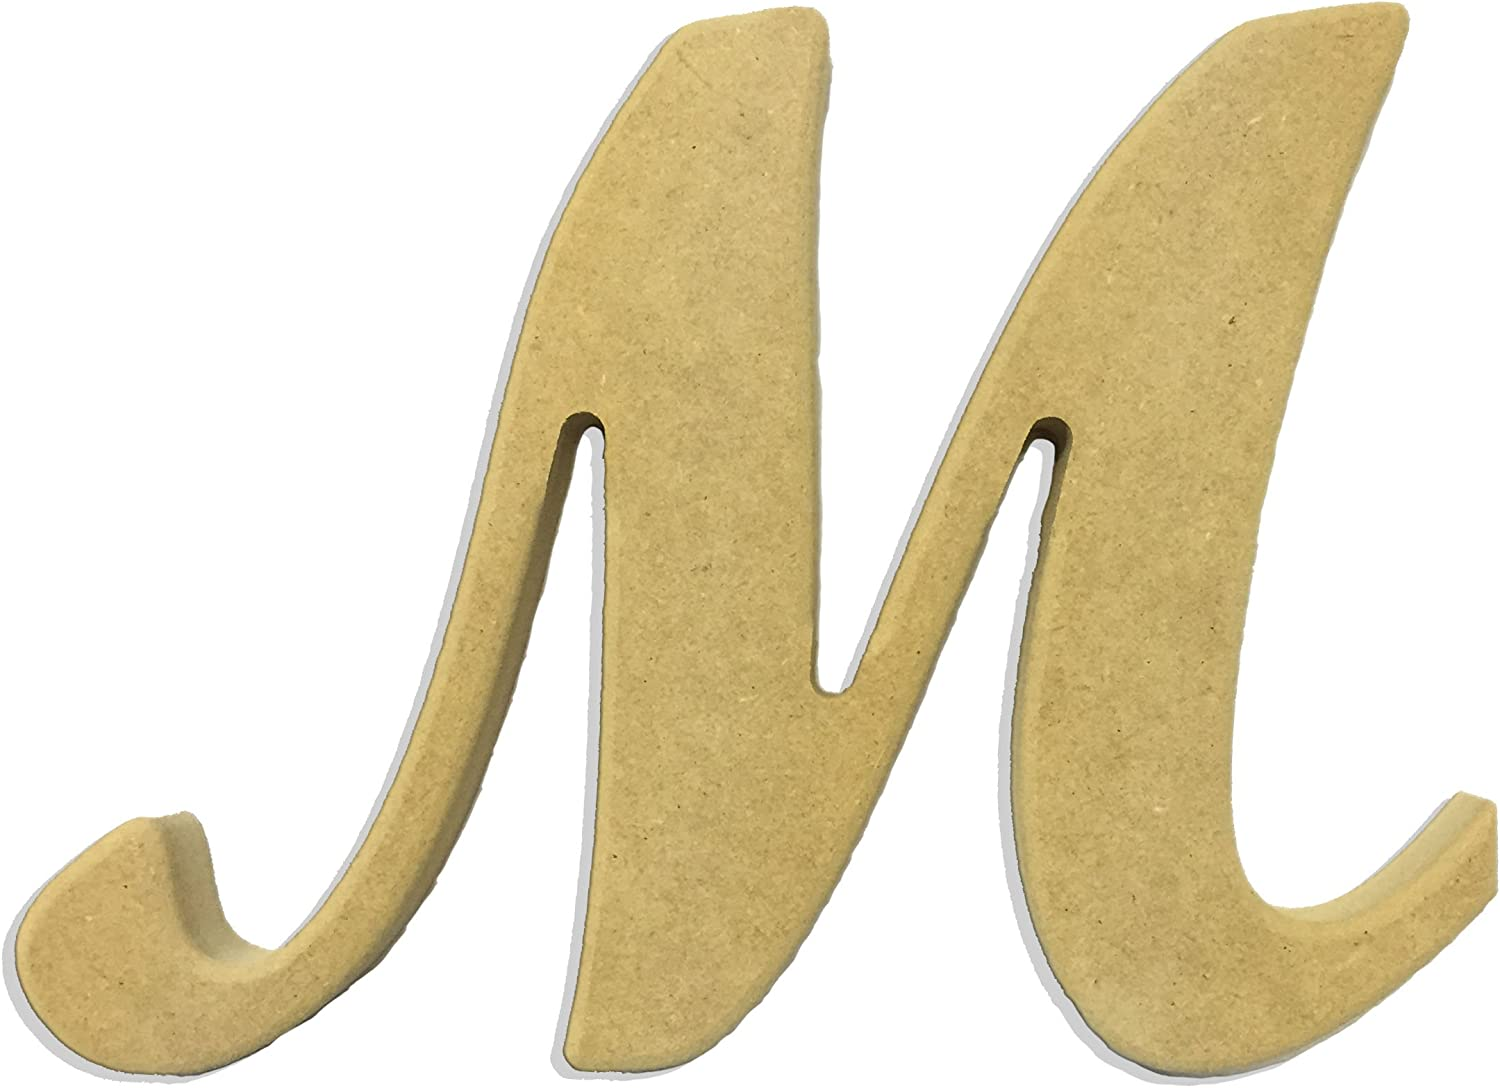 Amazon Com 6 Capital Letter M Script Cursive Unfinished Wood Diy Craft Cutout To Sell Ready To Paint Wooden Stacked We got our twitter set up! 6 capital letter m script cursive unfinished wood diy craft cutout to sell ready to paint wooden stacked